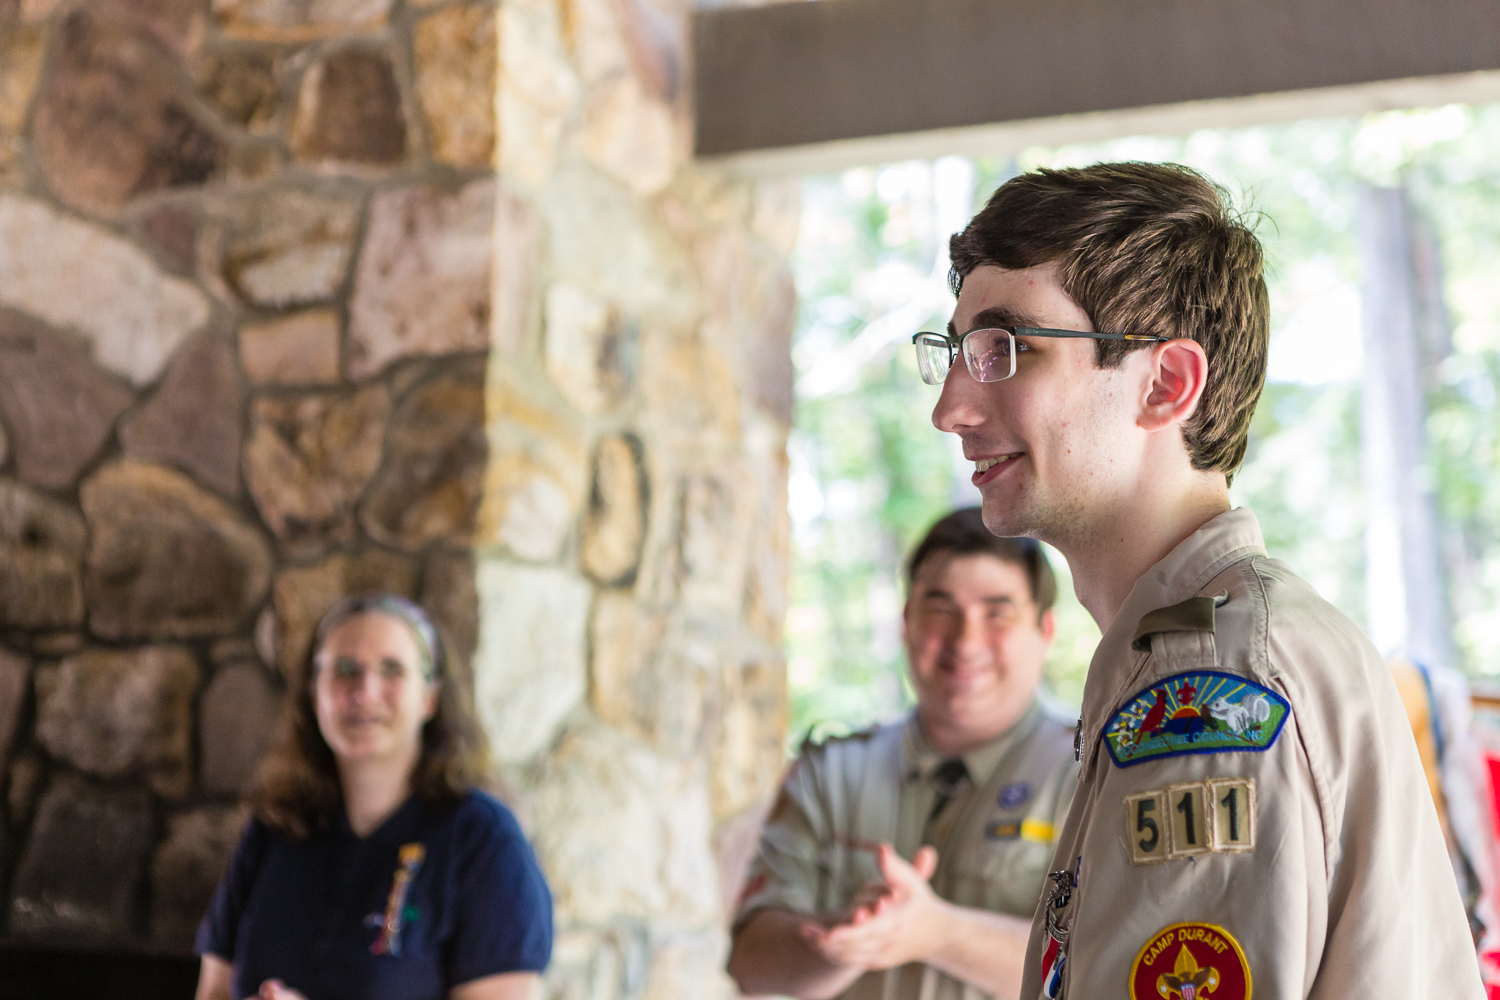 eagle-scout-ceremony-10.jpg